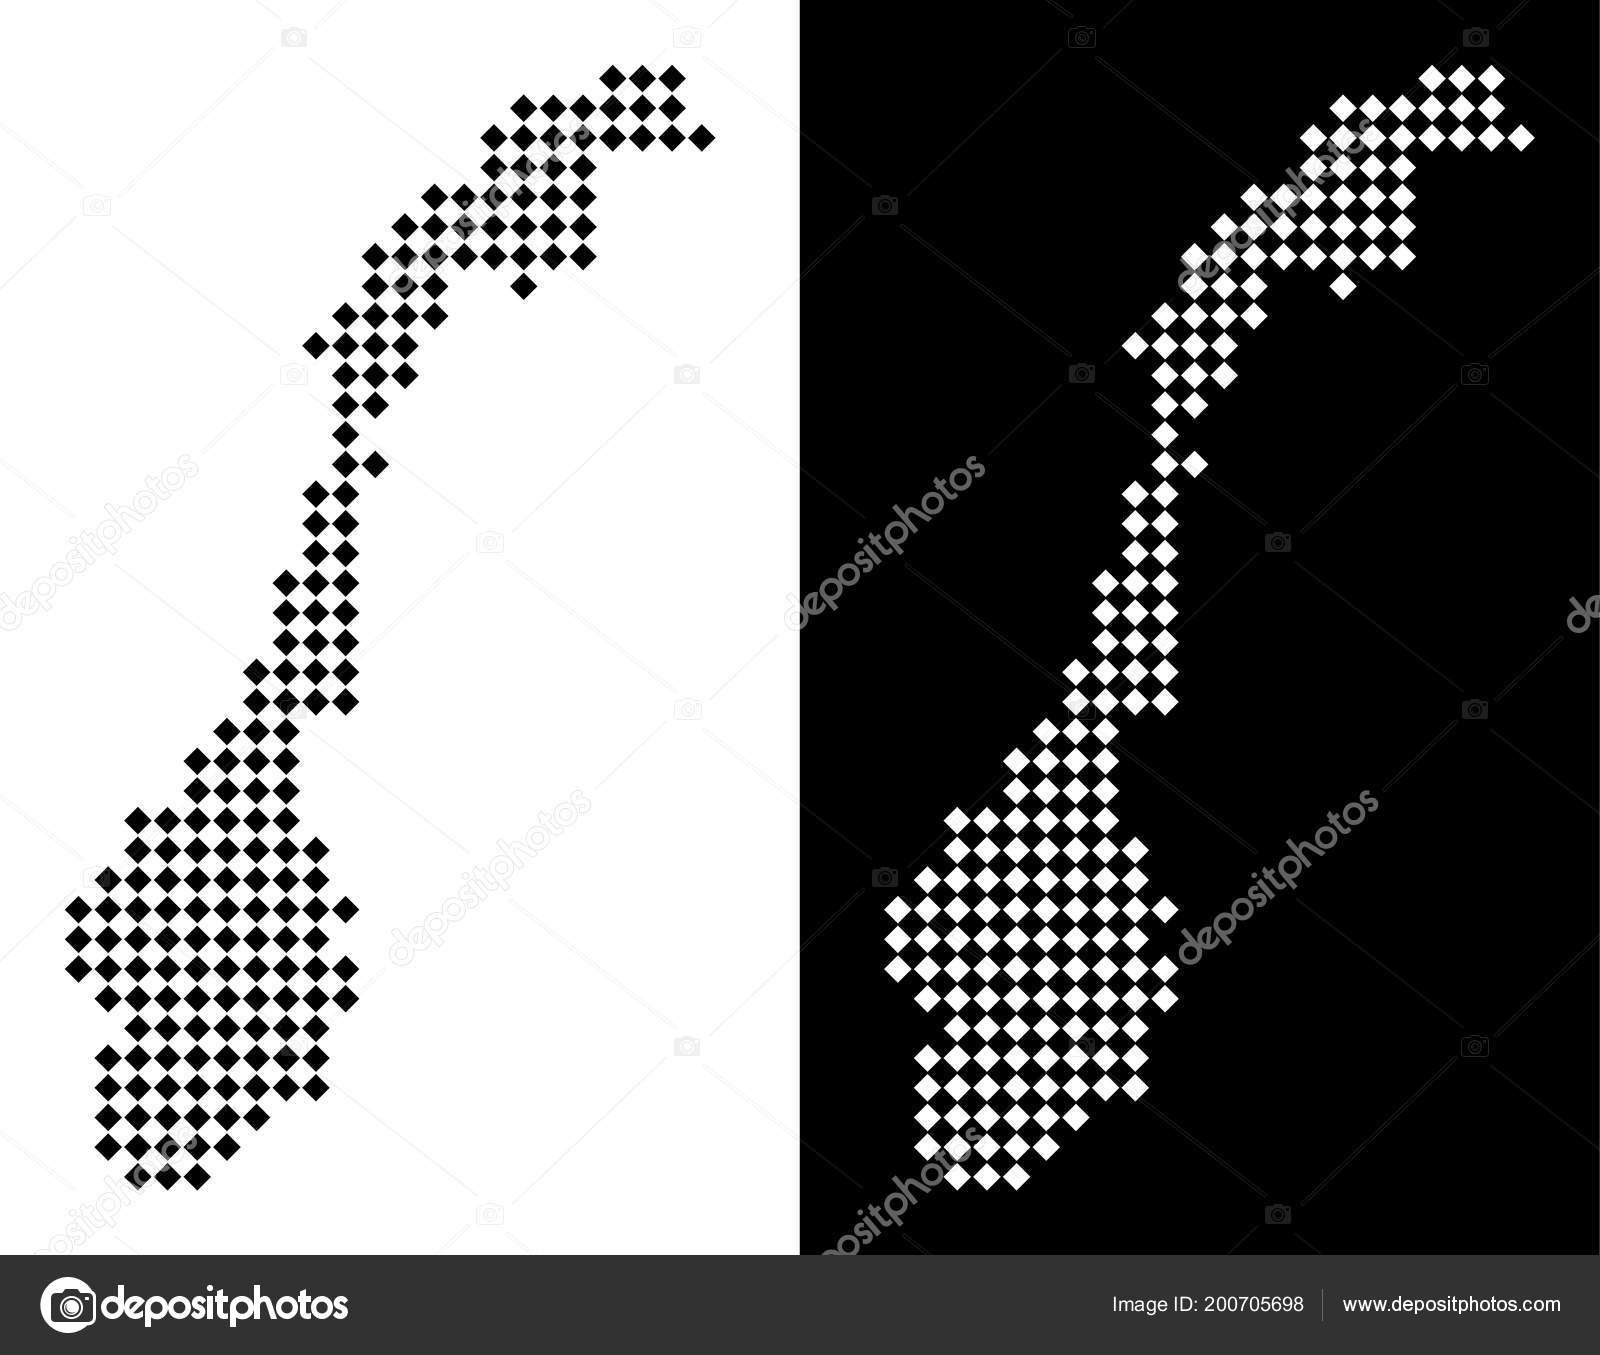 Abstract Geographic Maps In Black And White Colors On White